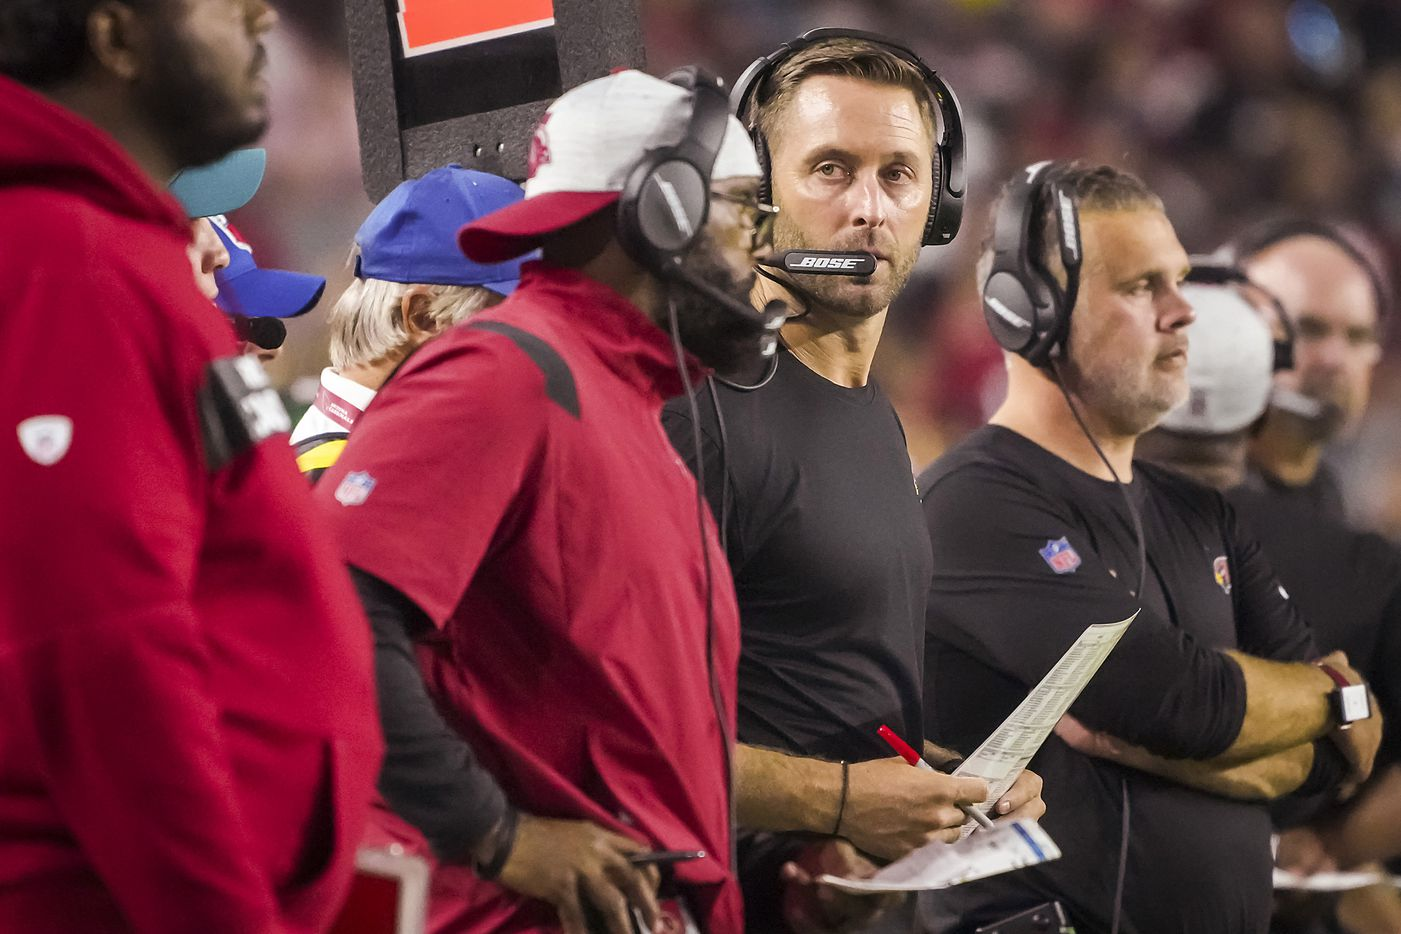 Arizona Cardinals head coach Kliff Kingsbury watches from the sidelines during the second quarter of an NFL football game against the Dallas Cowboys at State Farm Stadium on Friday, Aug. 13, 2021, in Glendale, Ariz.